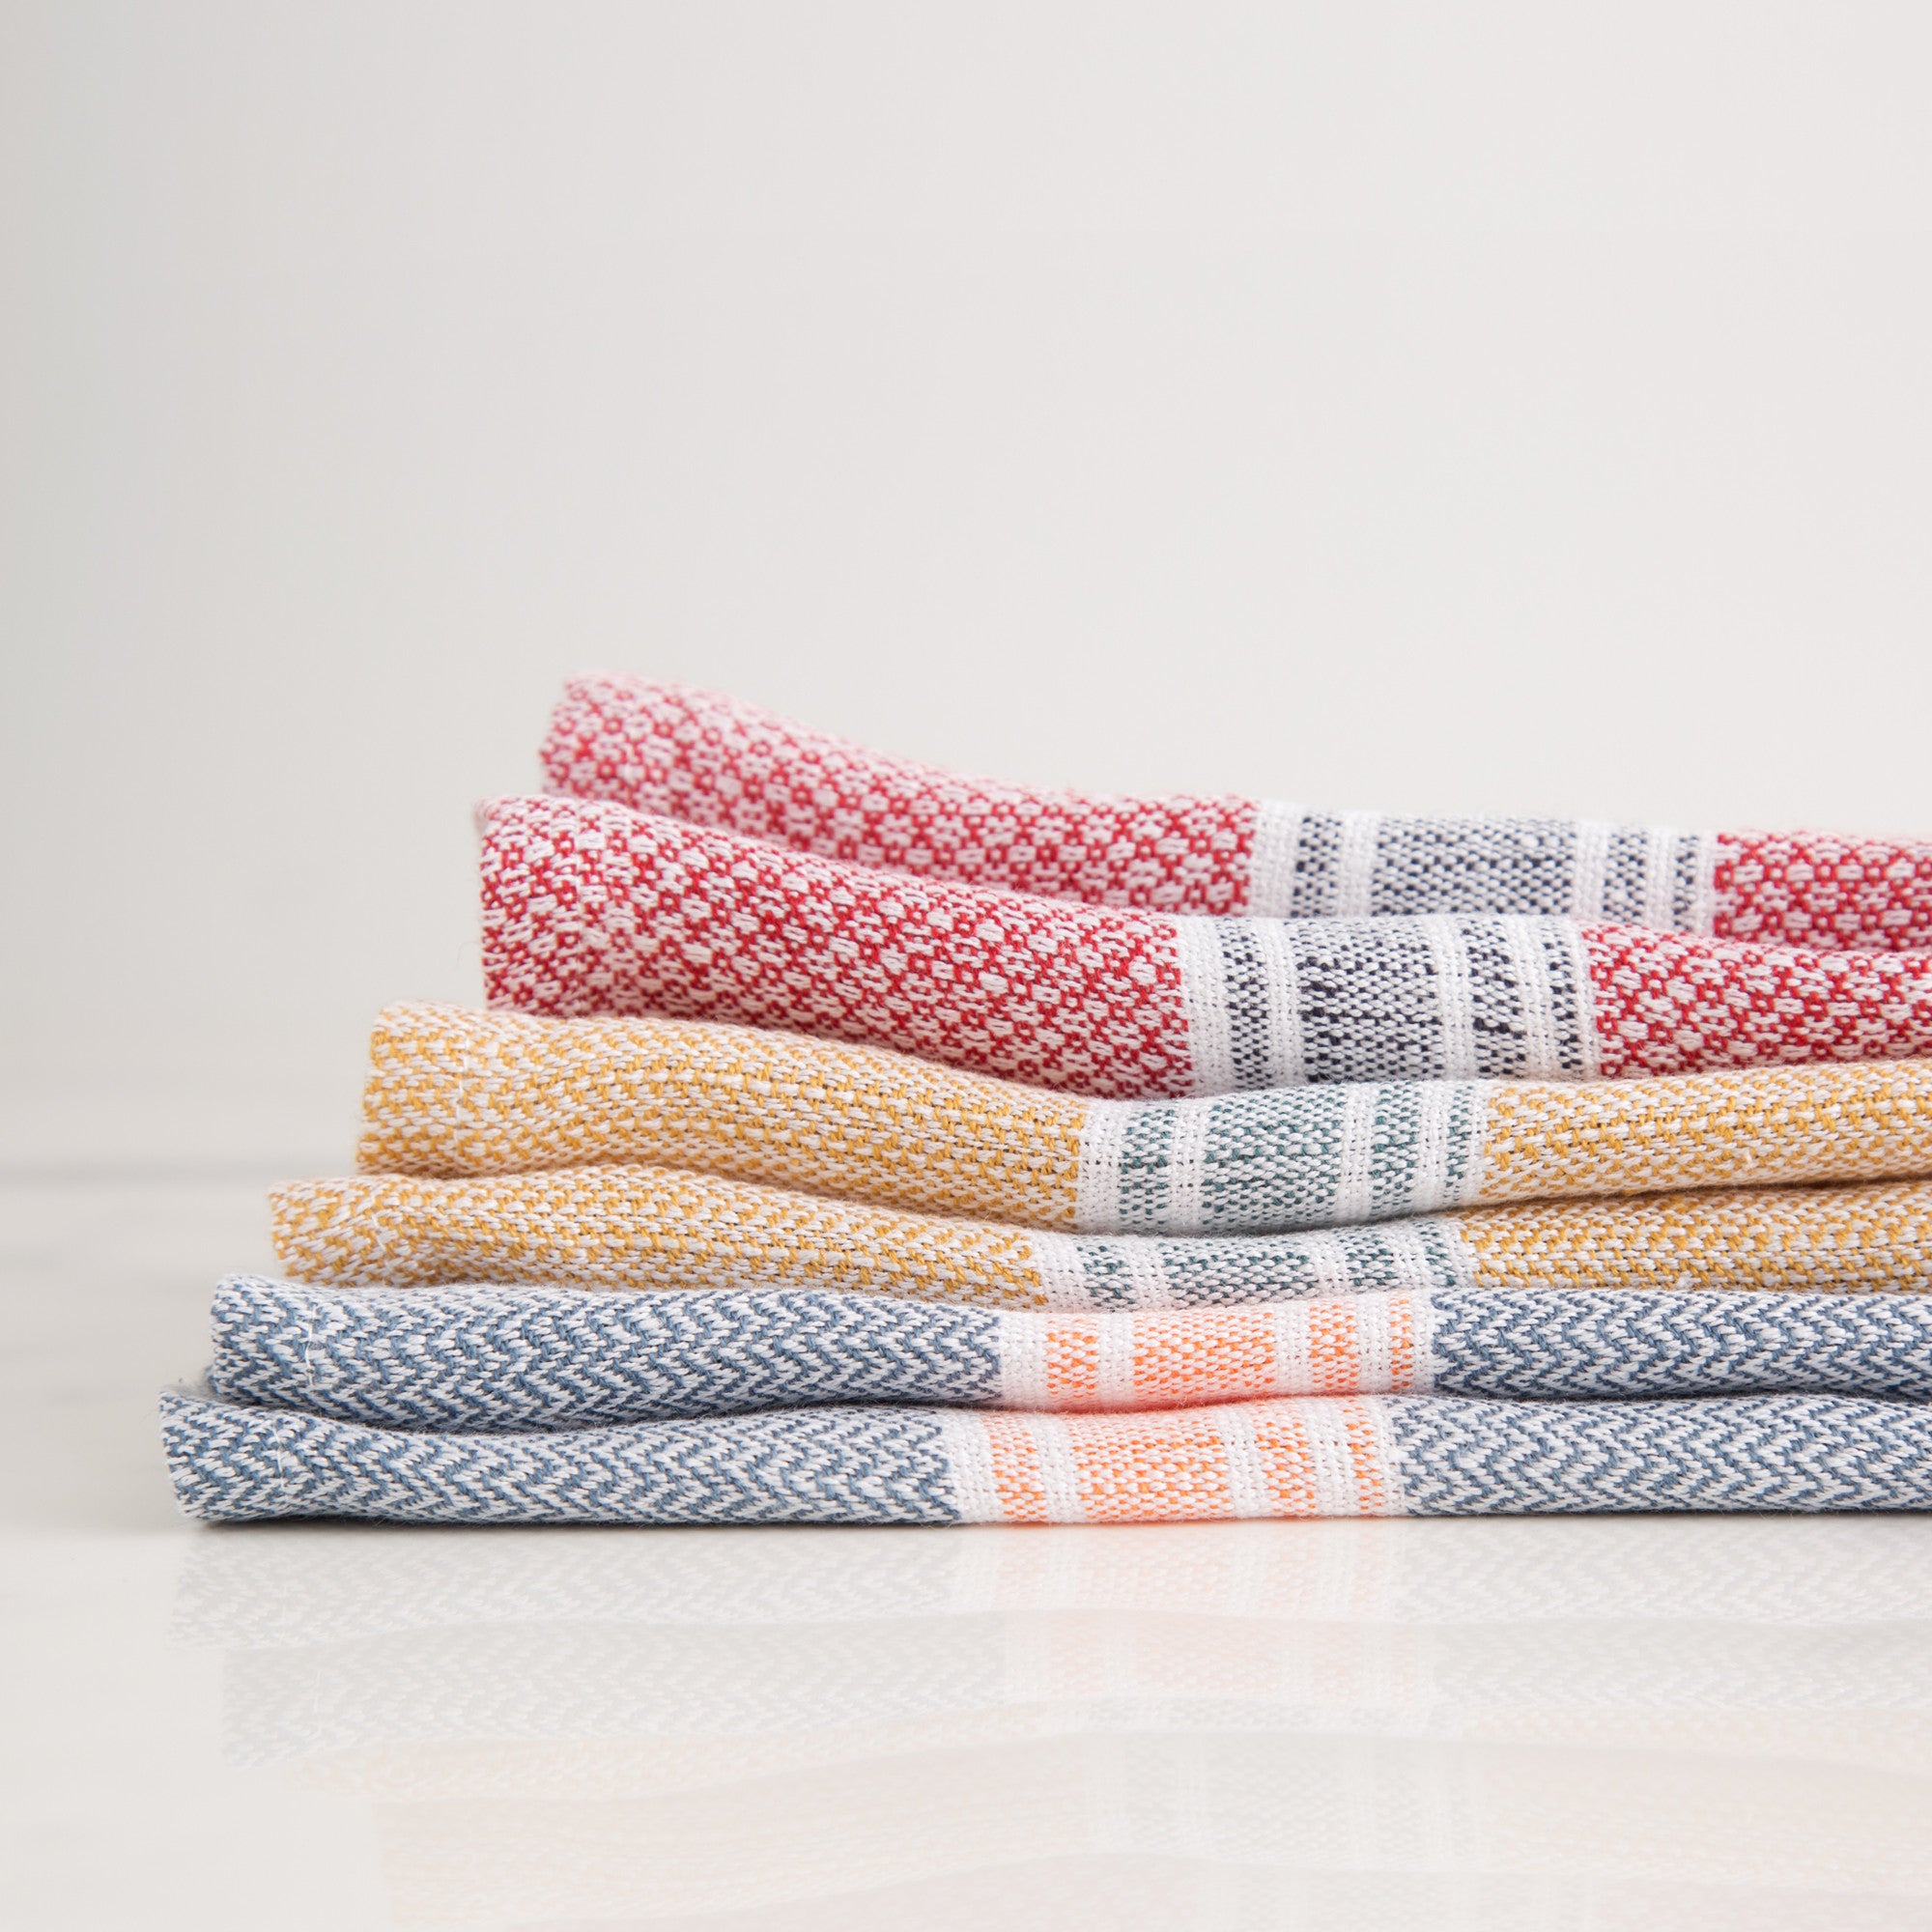 American-made Handwoven Tea Towel II by Sutherland - Carpenter Hill